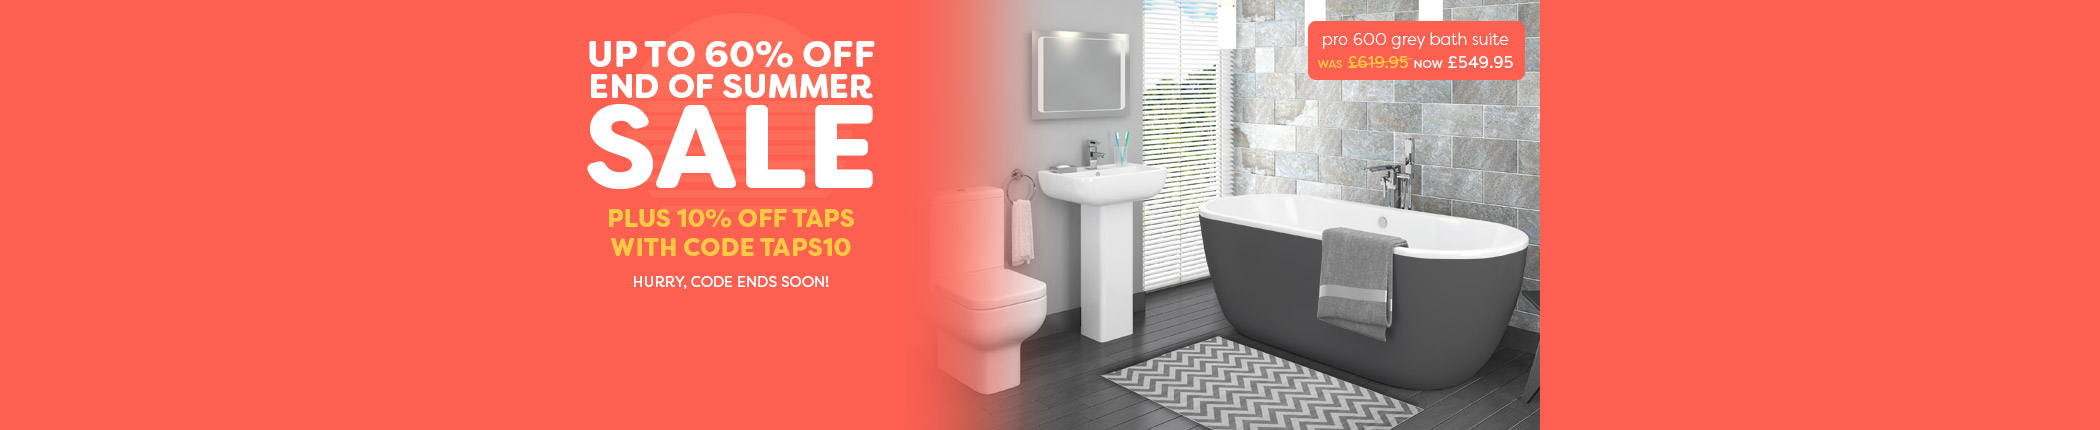 summer-sale-10off-taps-pro-600-grey-bath-suite-countdown-sep17-hbnr